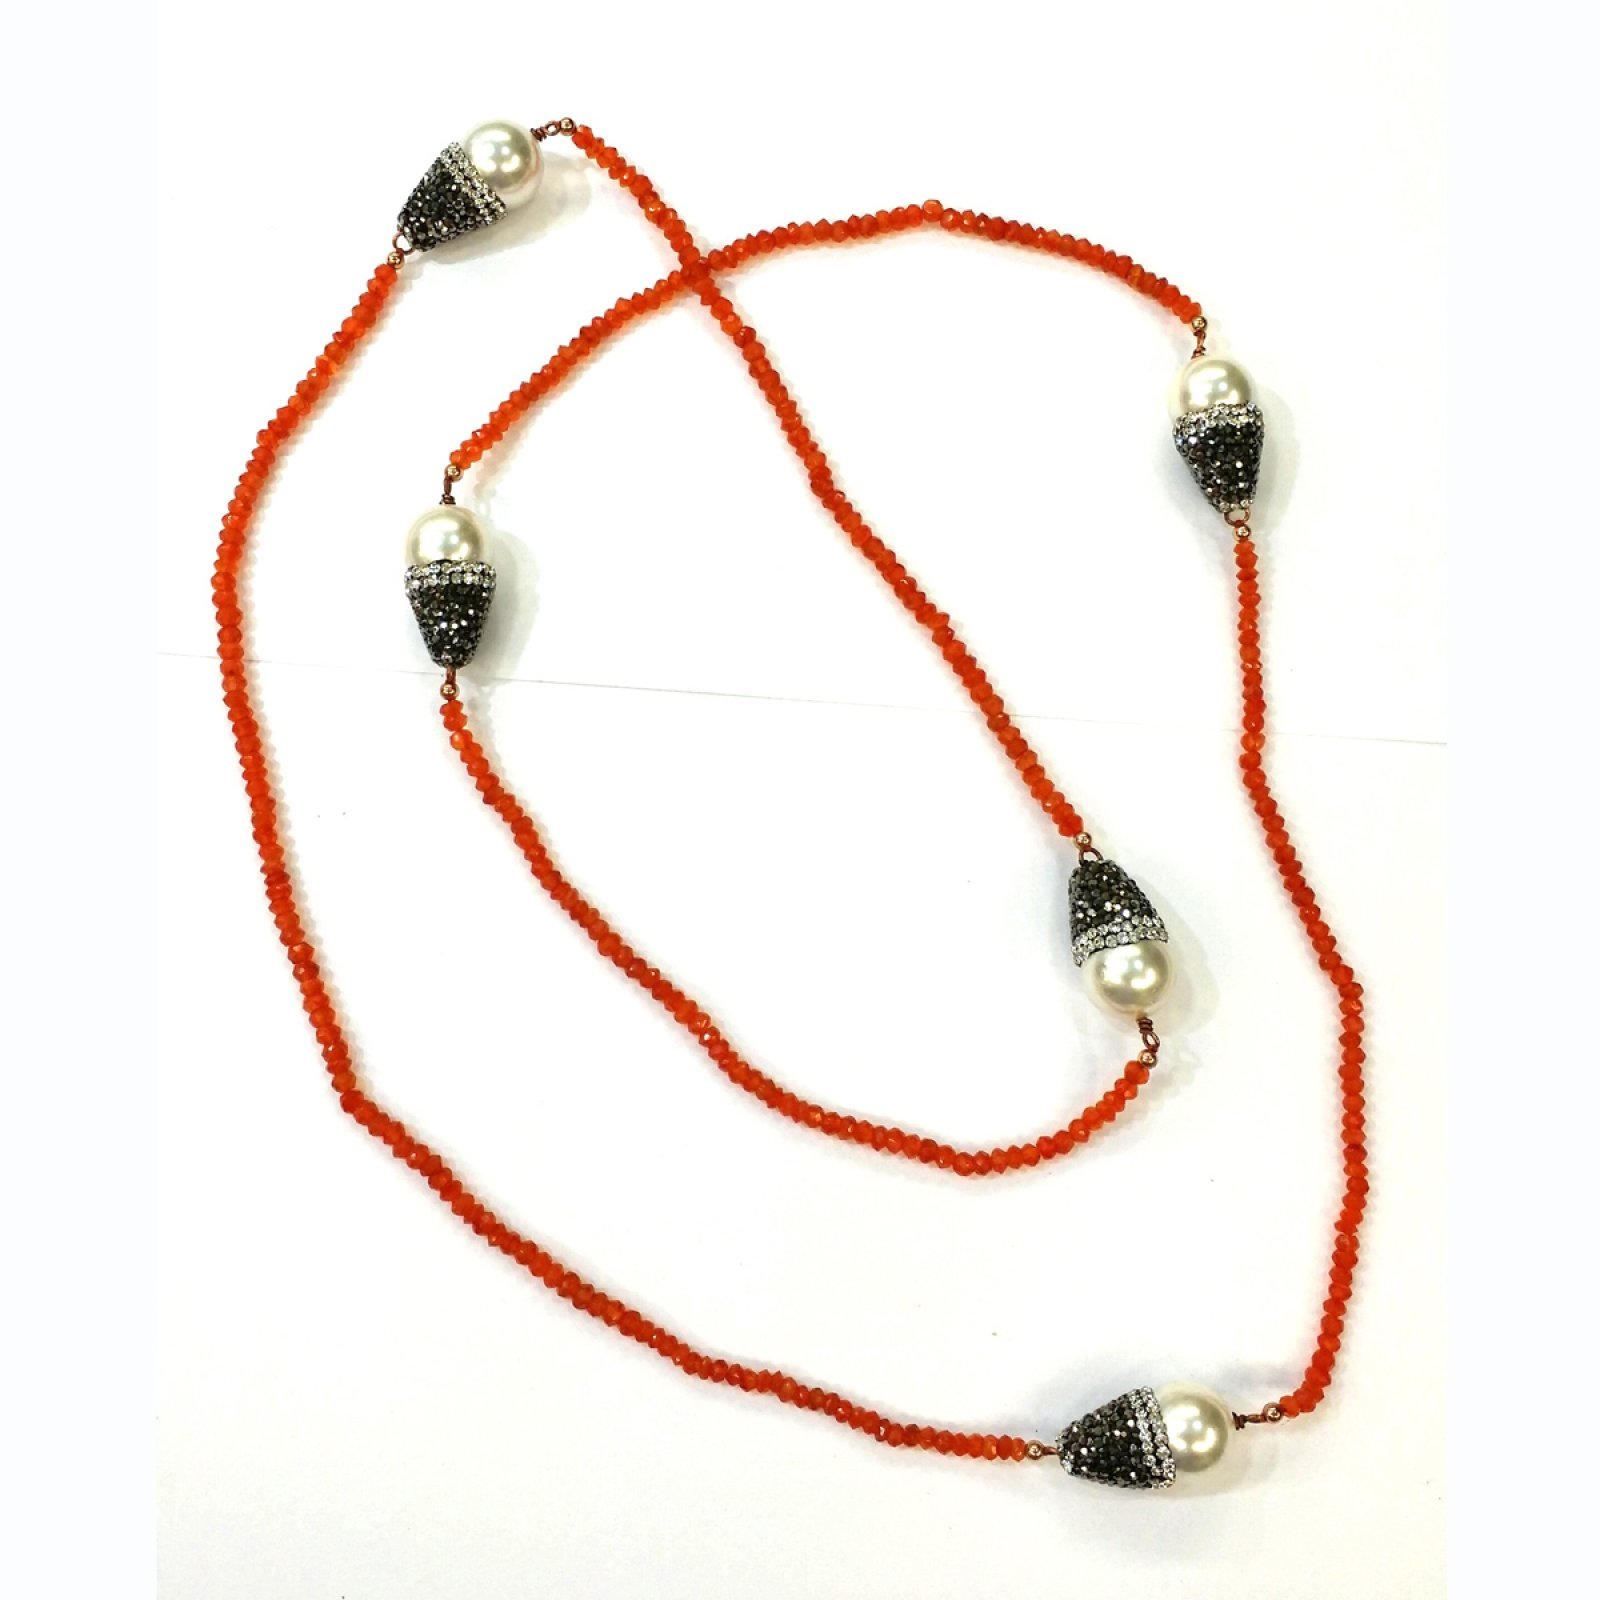 DRN57 - CORNALION STONE BEADS & MAJORCA PEARLS NECKLACE DECORATED WITH SWAROVSKI CRYSTALS